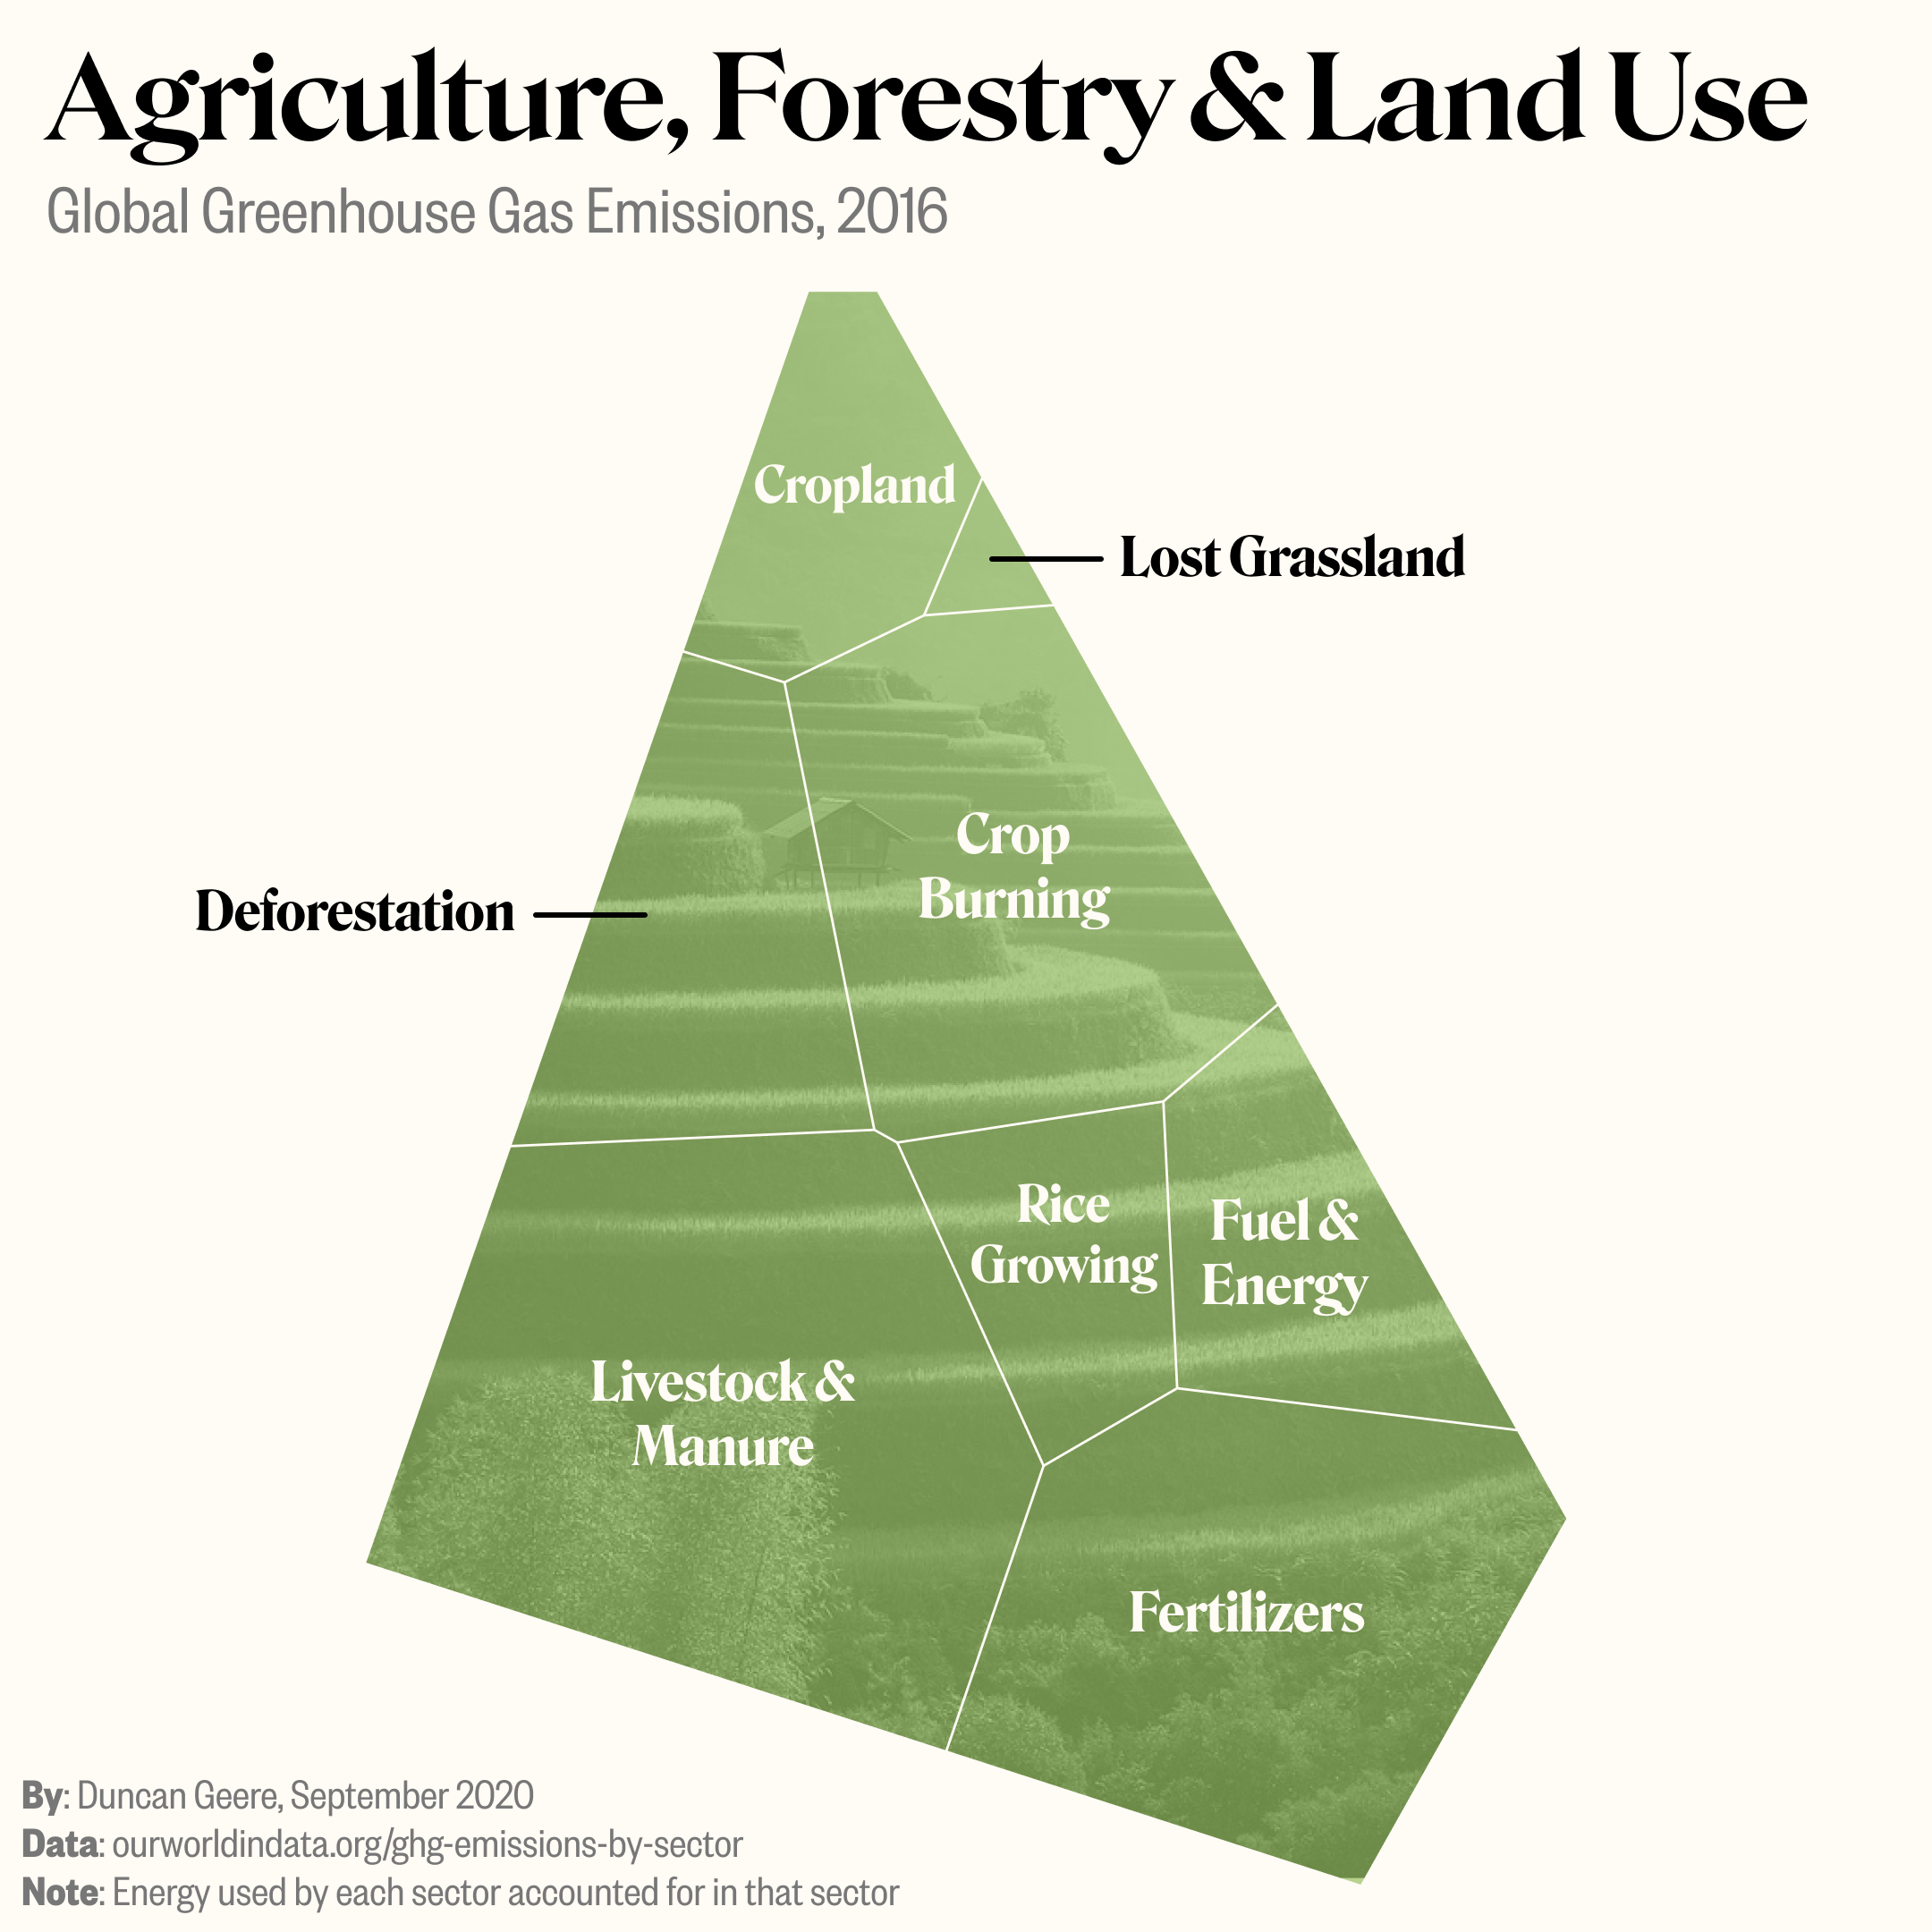 Agriculture, forestry and land use emissions, 2016